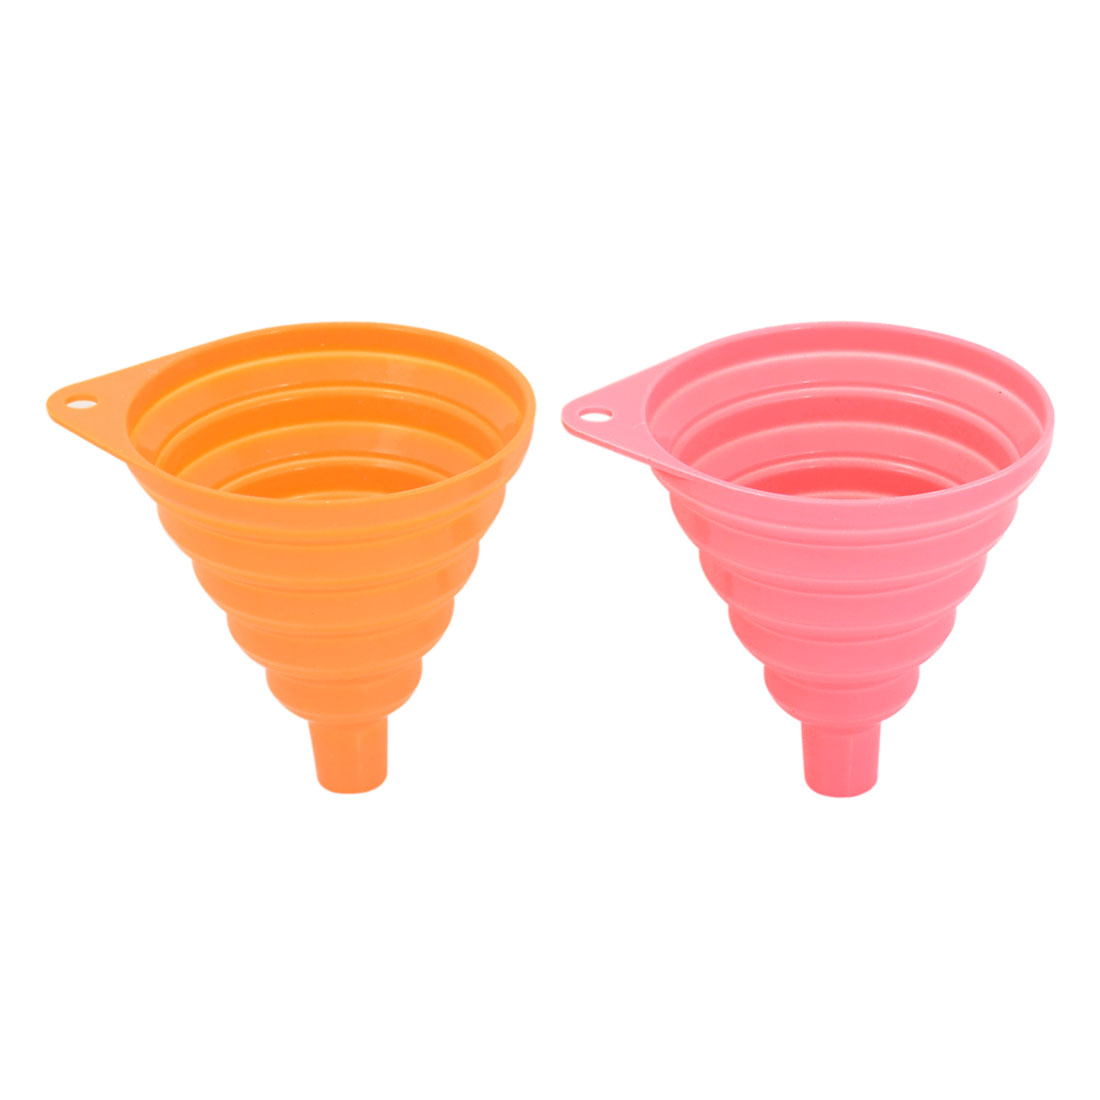 Silicone Cone Heat Resistant Foldable Filter Funnel Hopper Kitchen Tool 2pcs